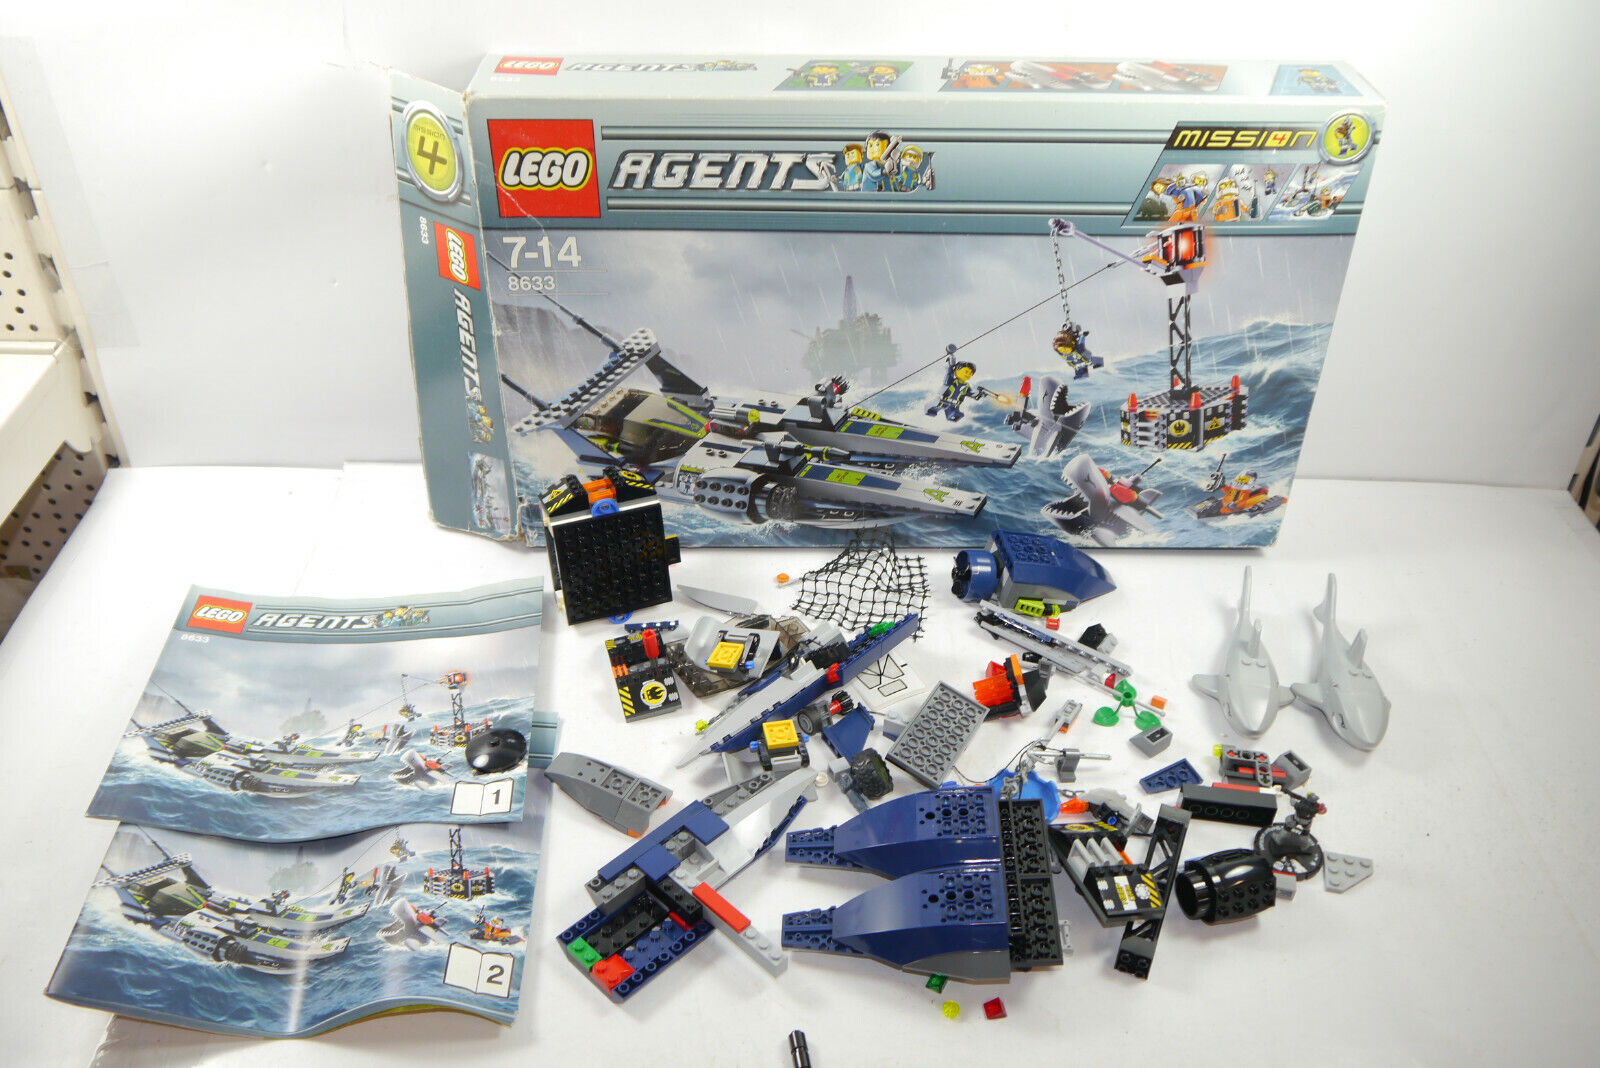 Lego 8633 Agents 2 x Great White Shark with Box Instructions (Mf5)